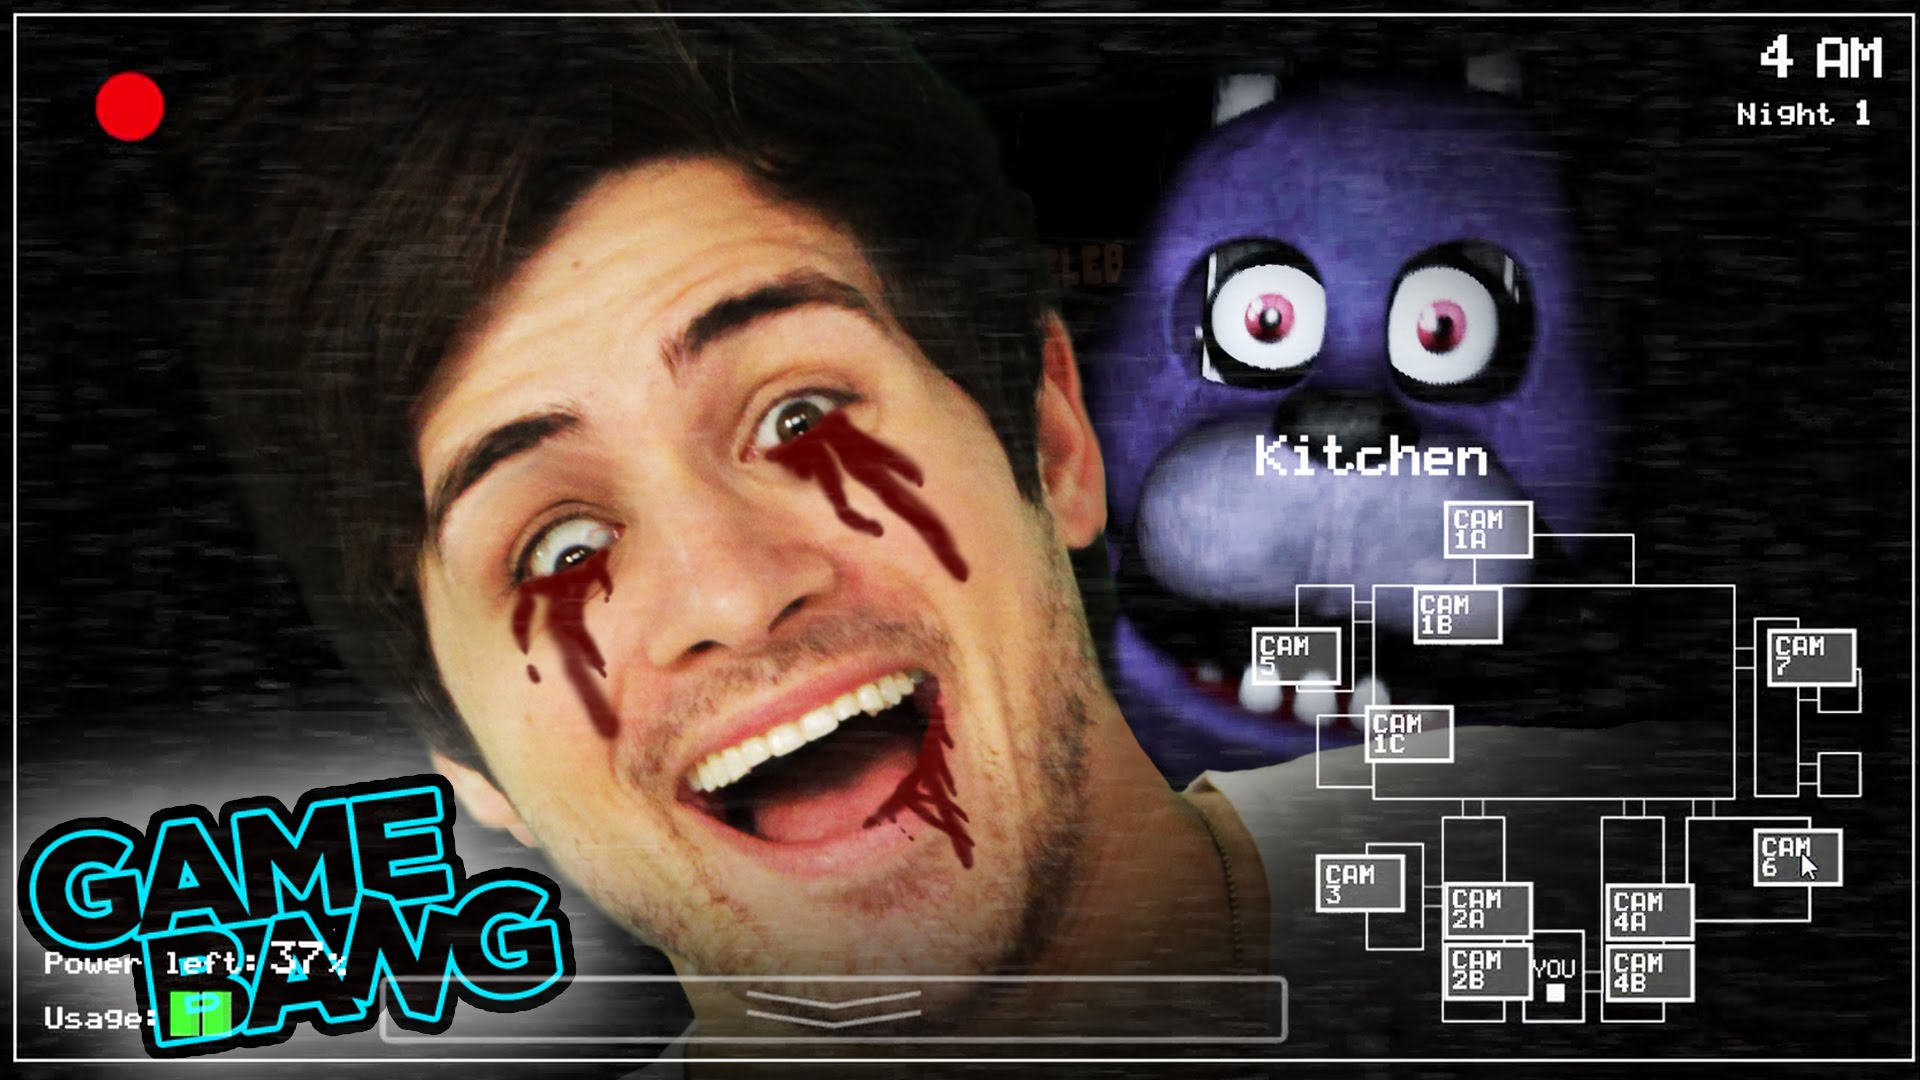 DEADLY CONCLUSION TO FIVE NIGHTS AT FREDDY'S